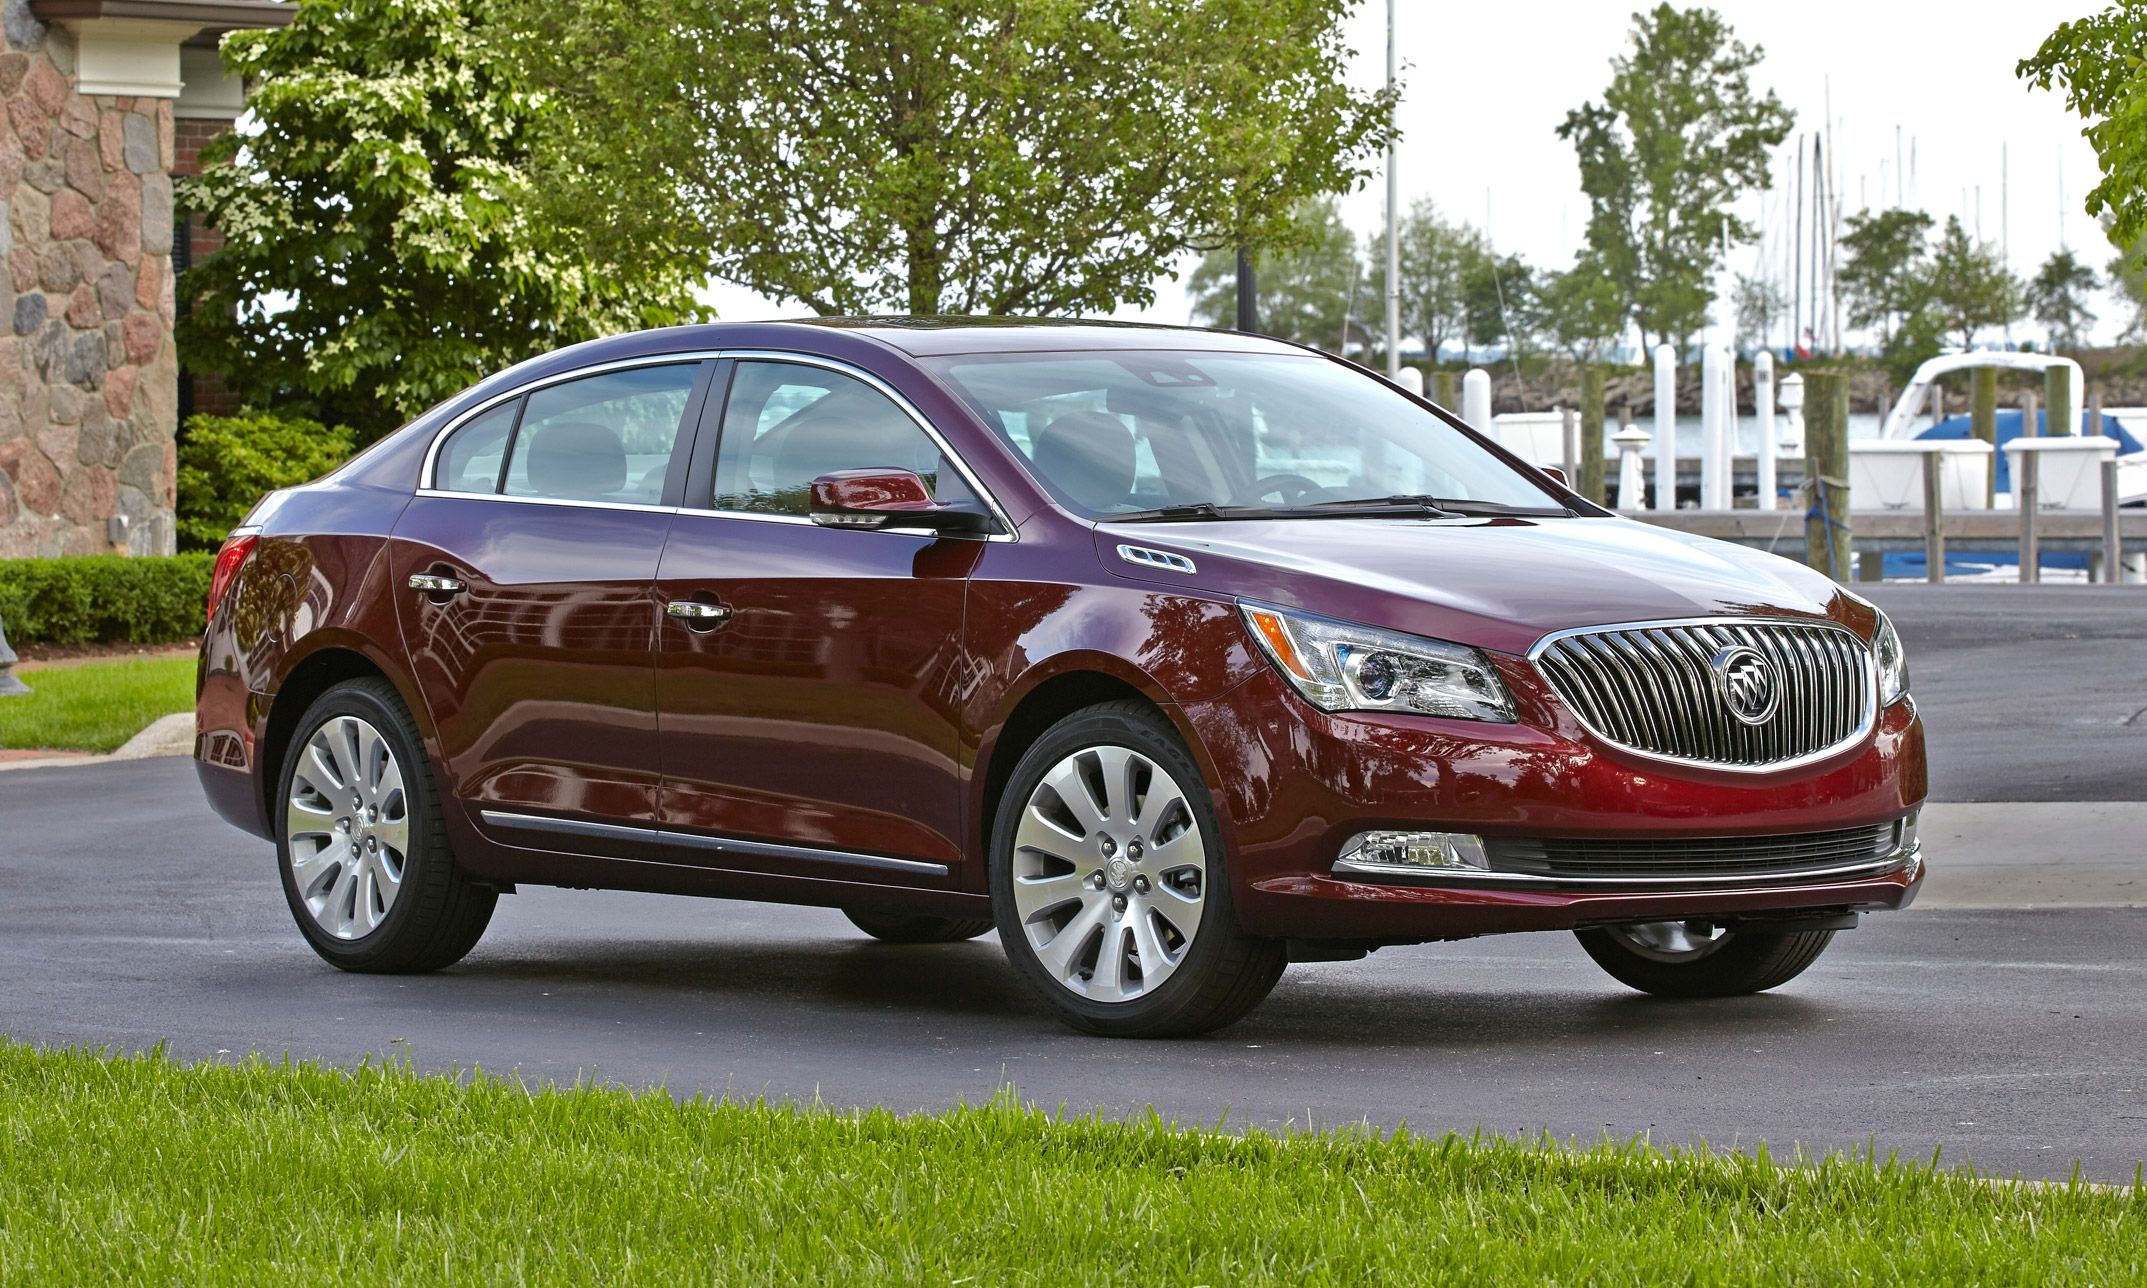 Best Snow Cars Ever Buick Lacrosse All Wheel Drive An Option On